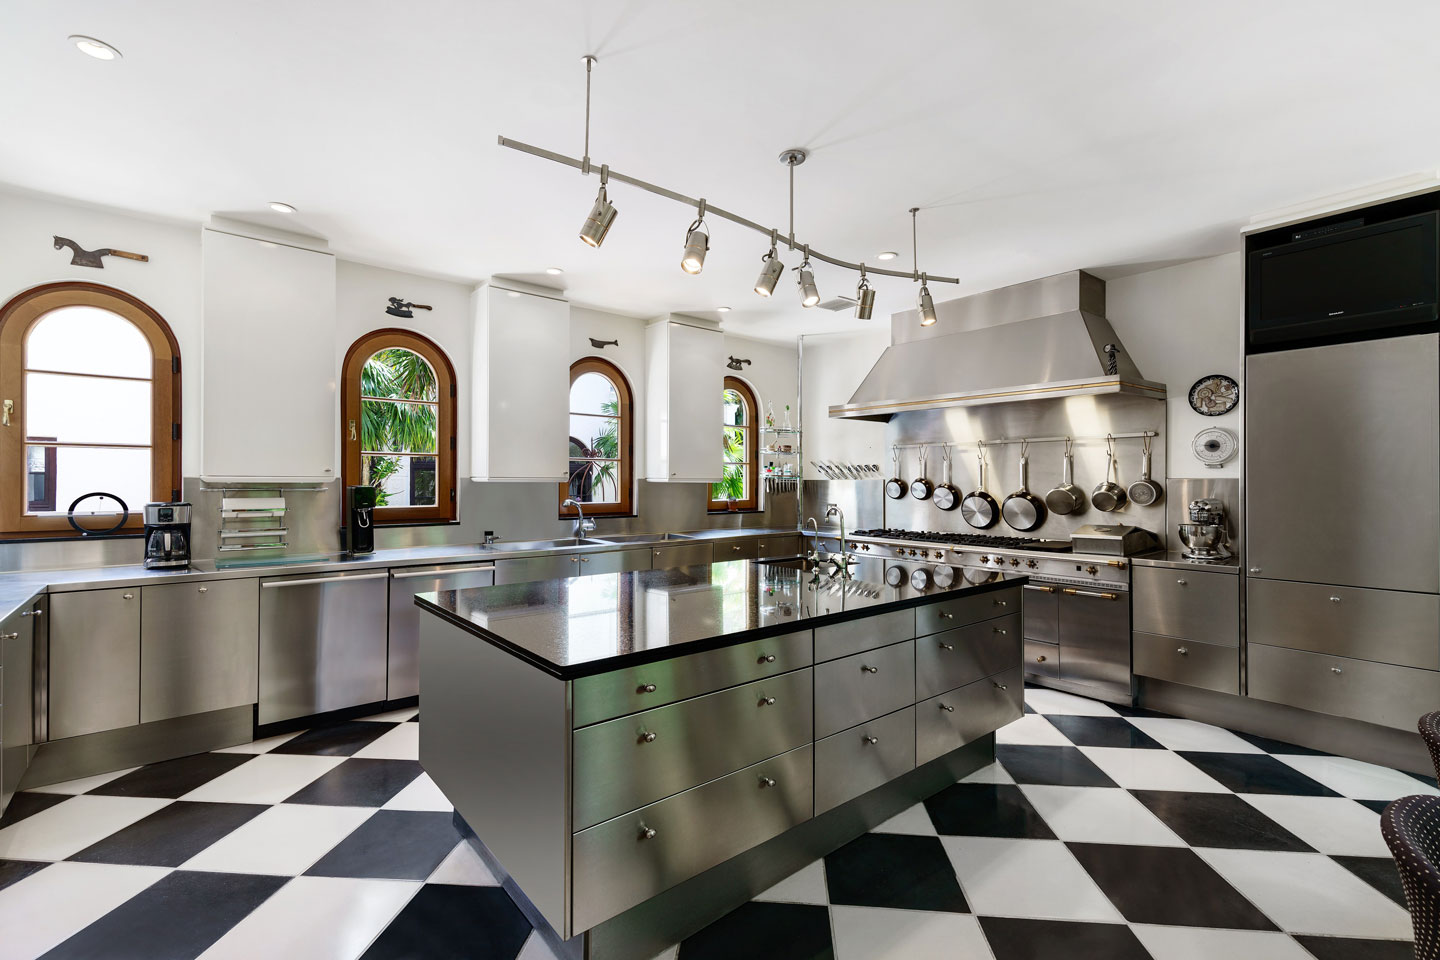 3725 Leafy Way, Coconut Grove, Miami, Florida, USA | The Kitchen | Listed by Dennis Carvajal, Real Estate Agent, ONE Sotheby's International Realty | Finest Residences